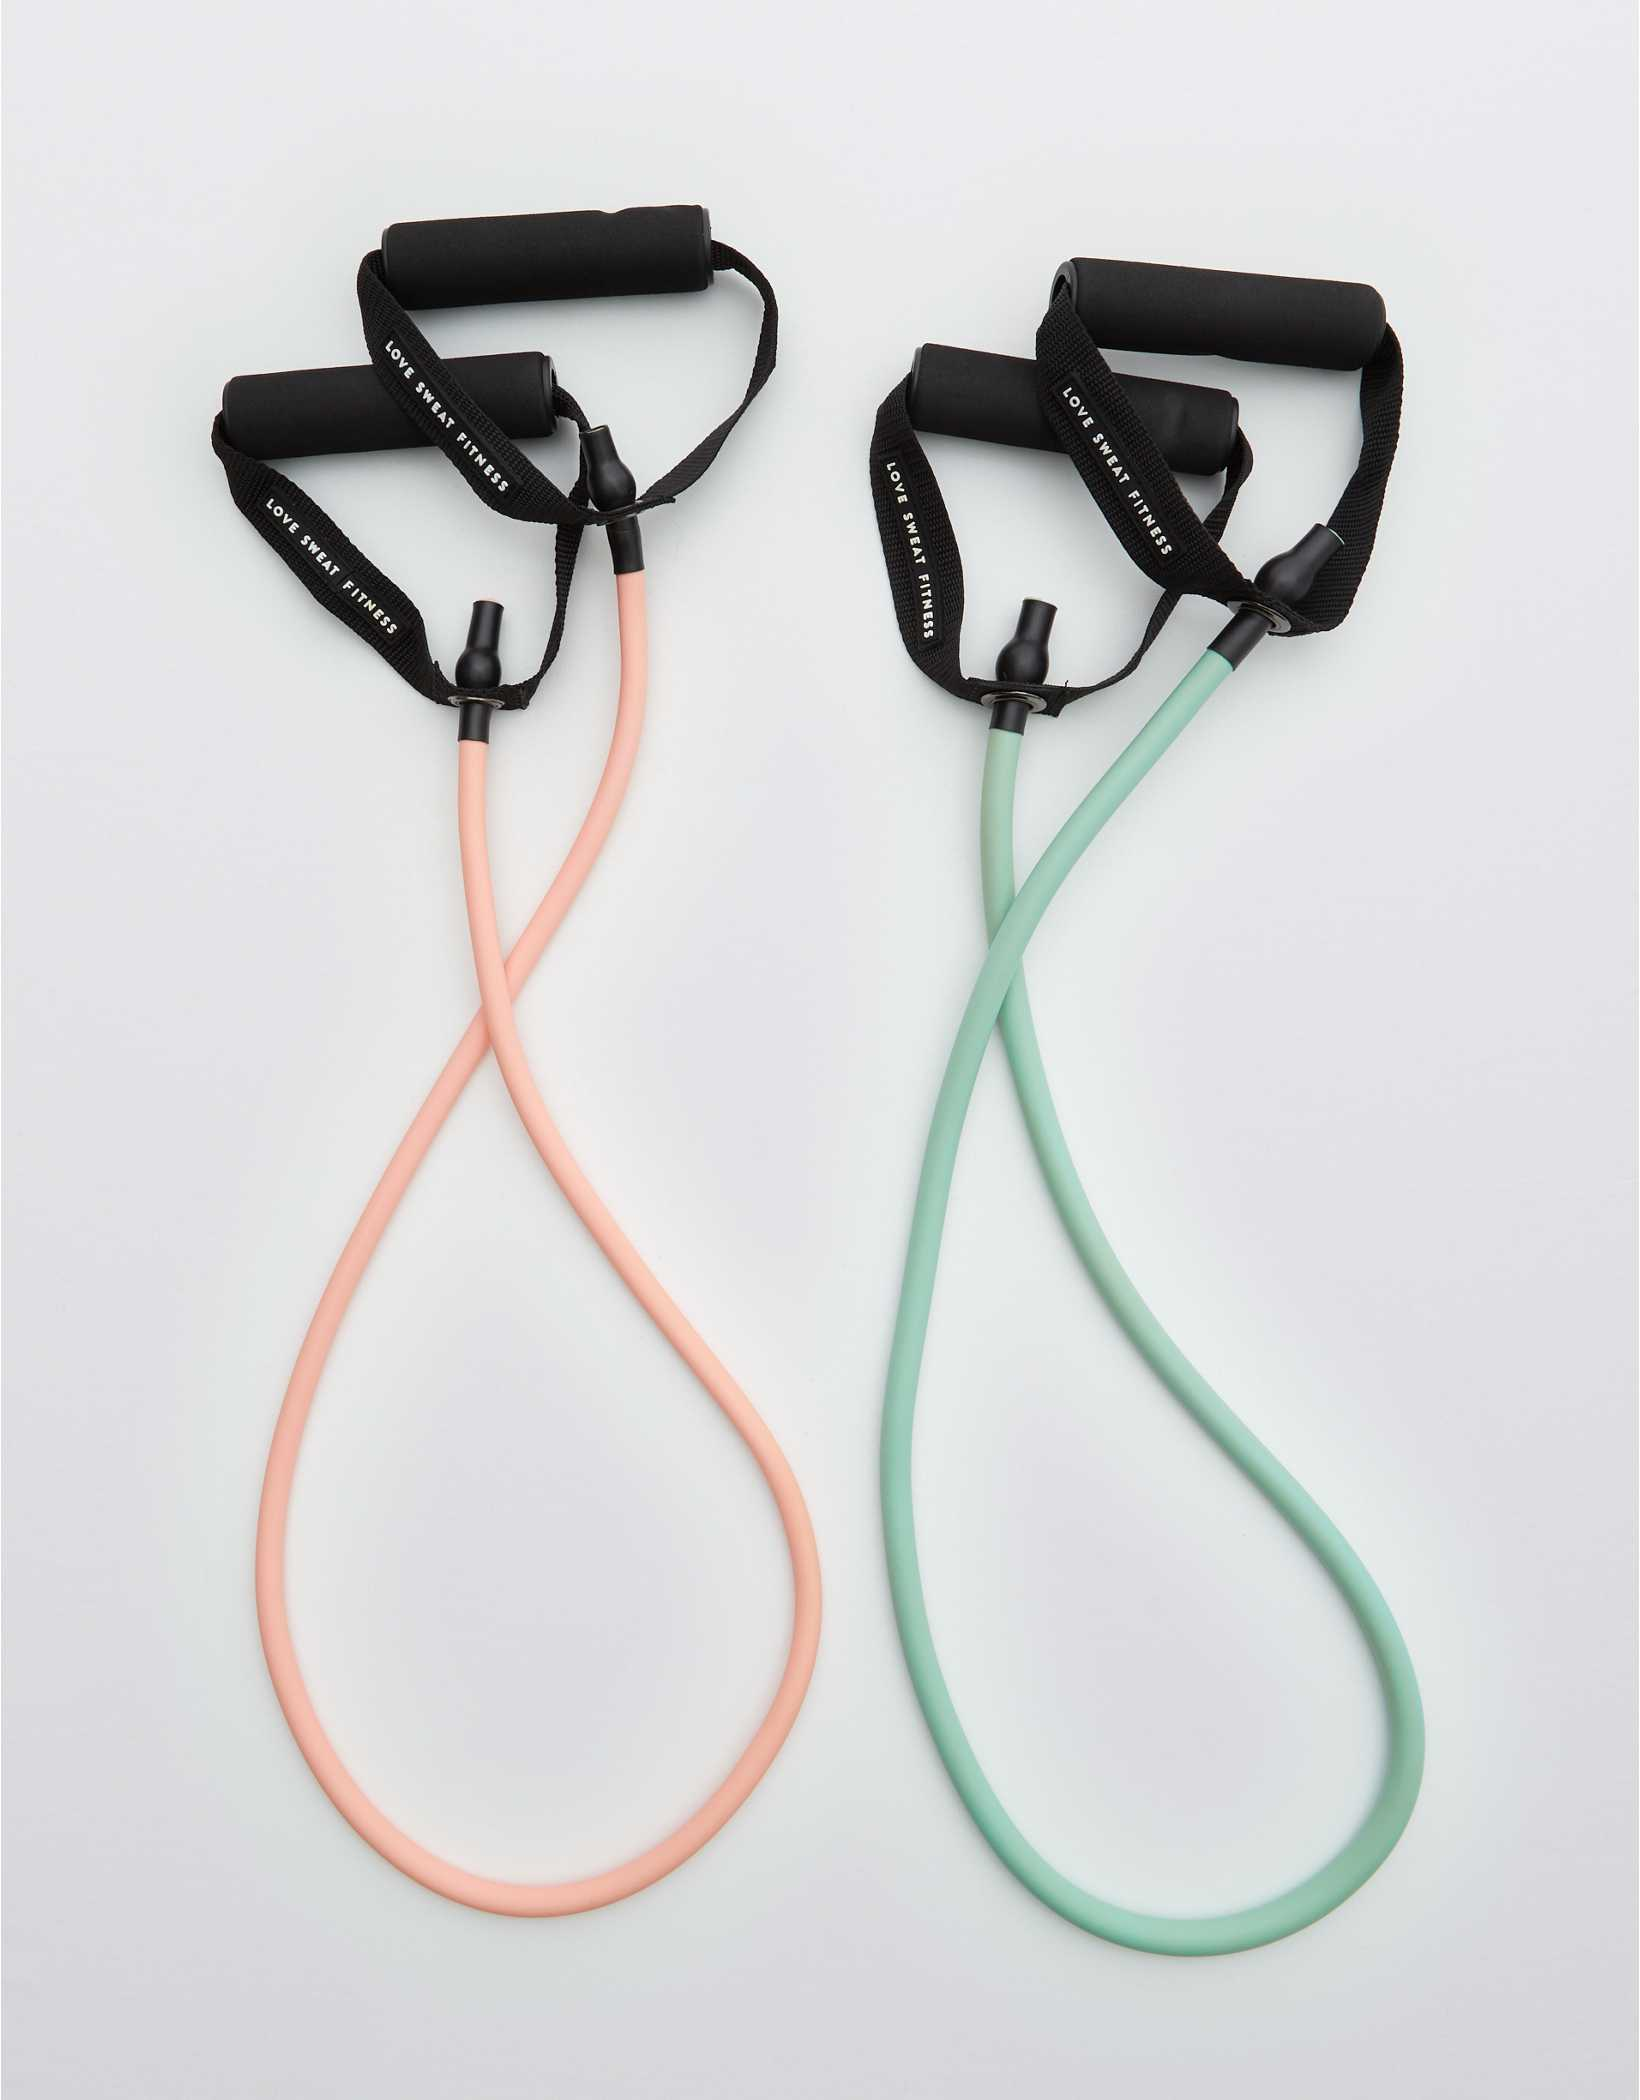 Love Sweat Fitness Resistance Tube Bands